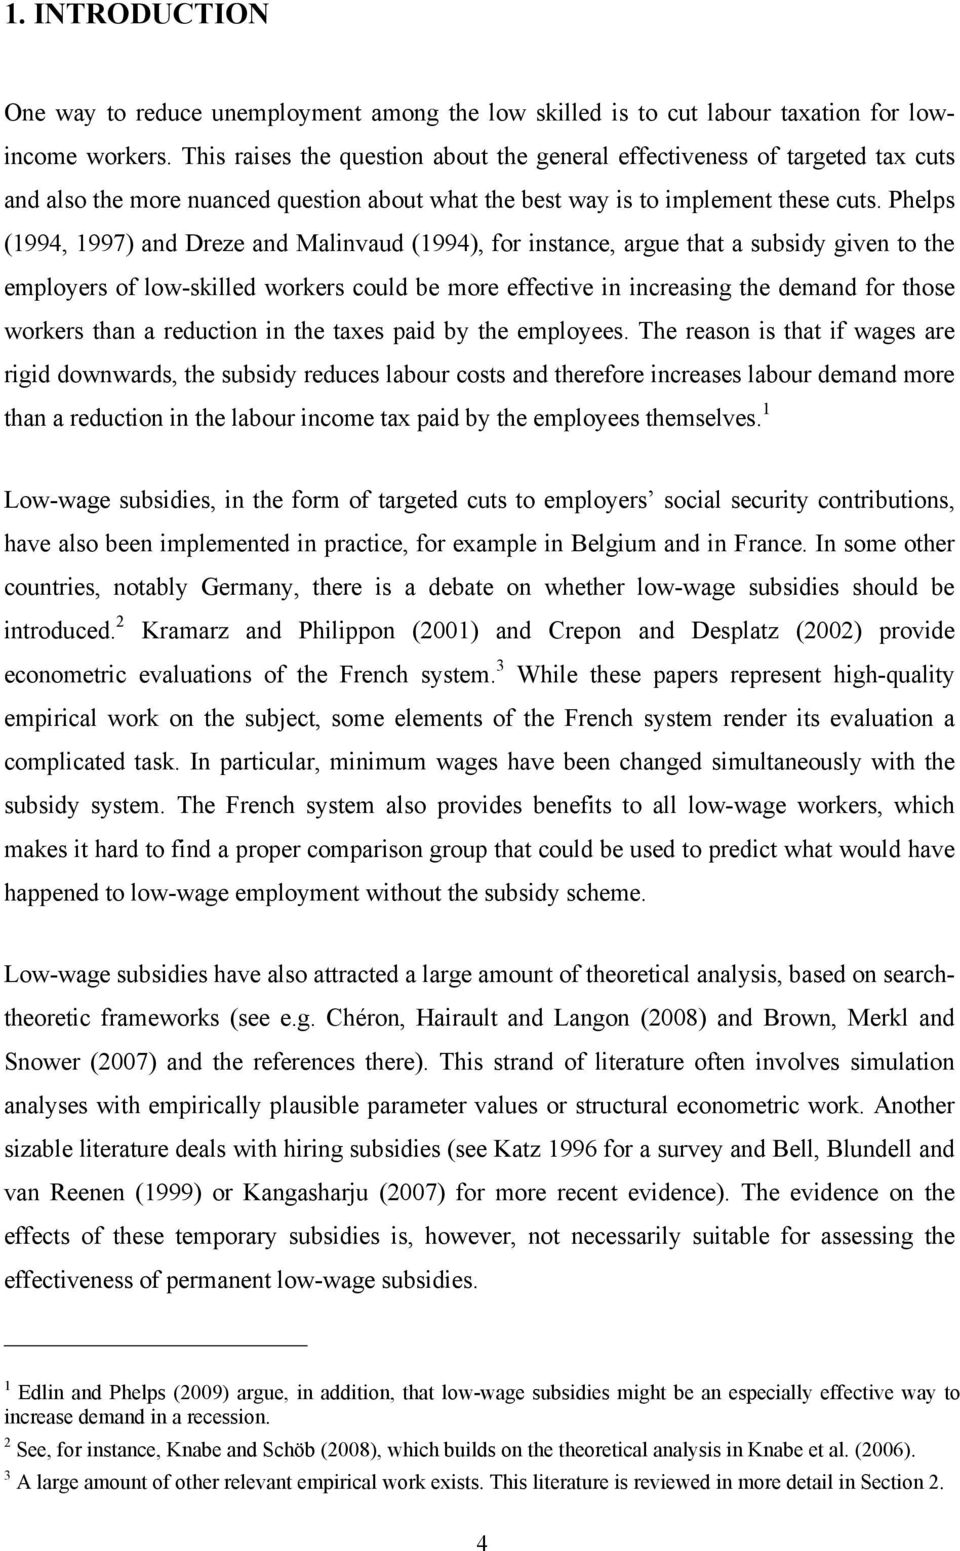 Phelps (1994, 1997) and Dreze and Malinvaud (1994), for instance, argue that a subsidy given to the employers of low-skilled workers could be more effective in increasing the demand for those workers